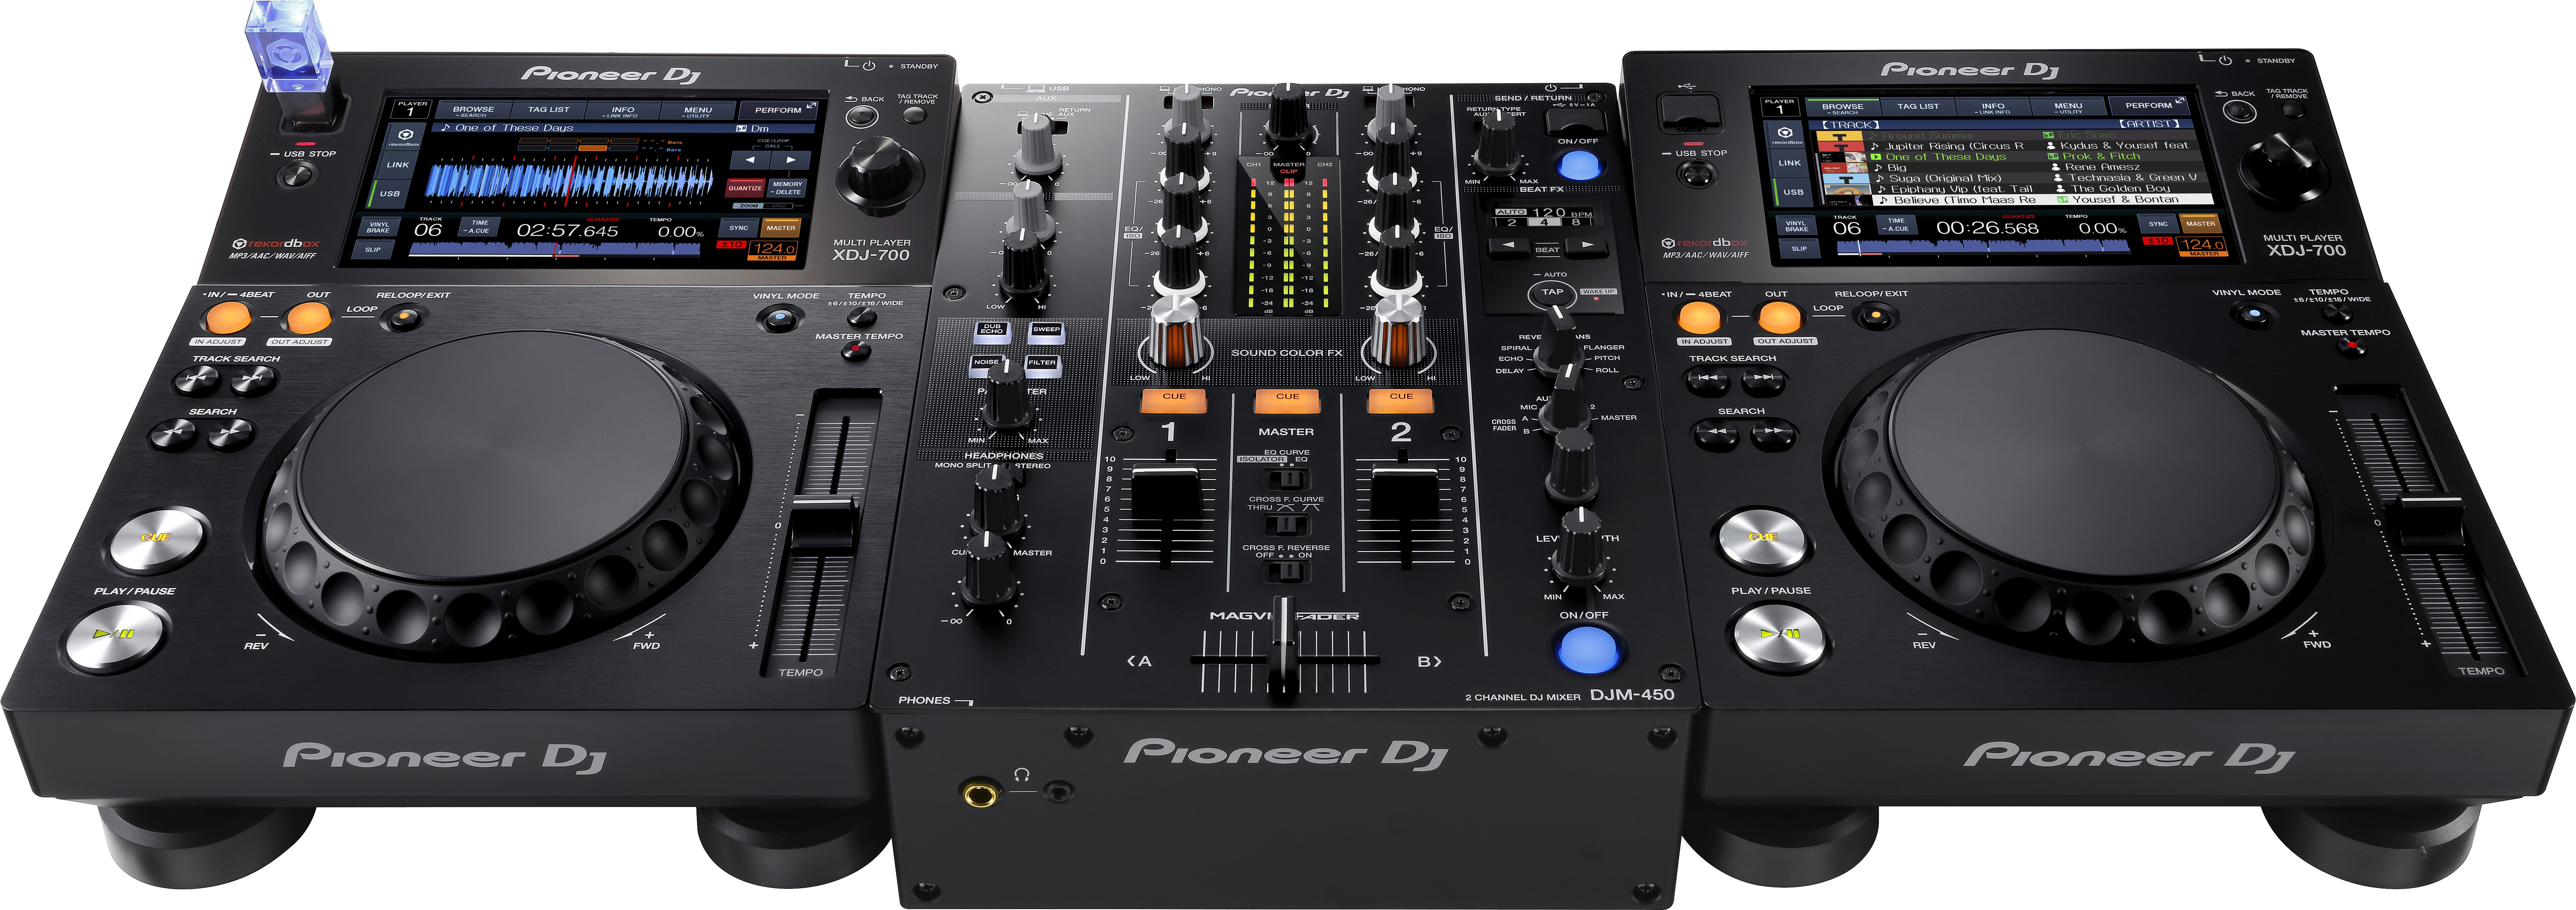 pioneer djm 450 table de mixage 2 voies 699 00 pi djm 450. Black Bedroom Furniture Sets. Home Design Ideas